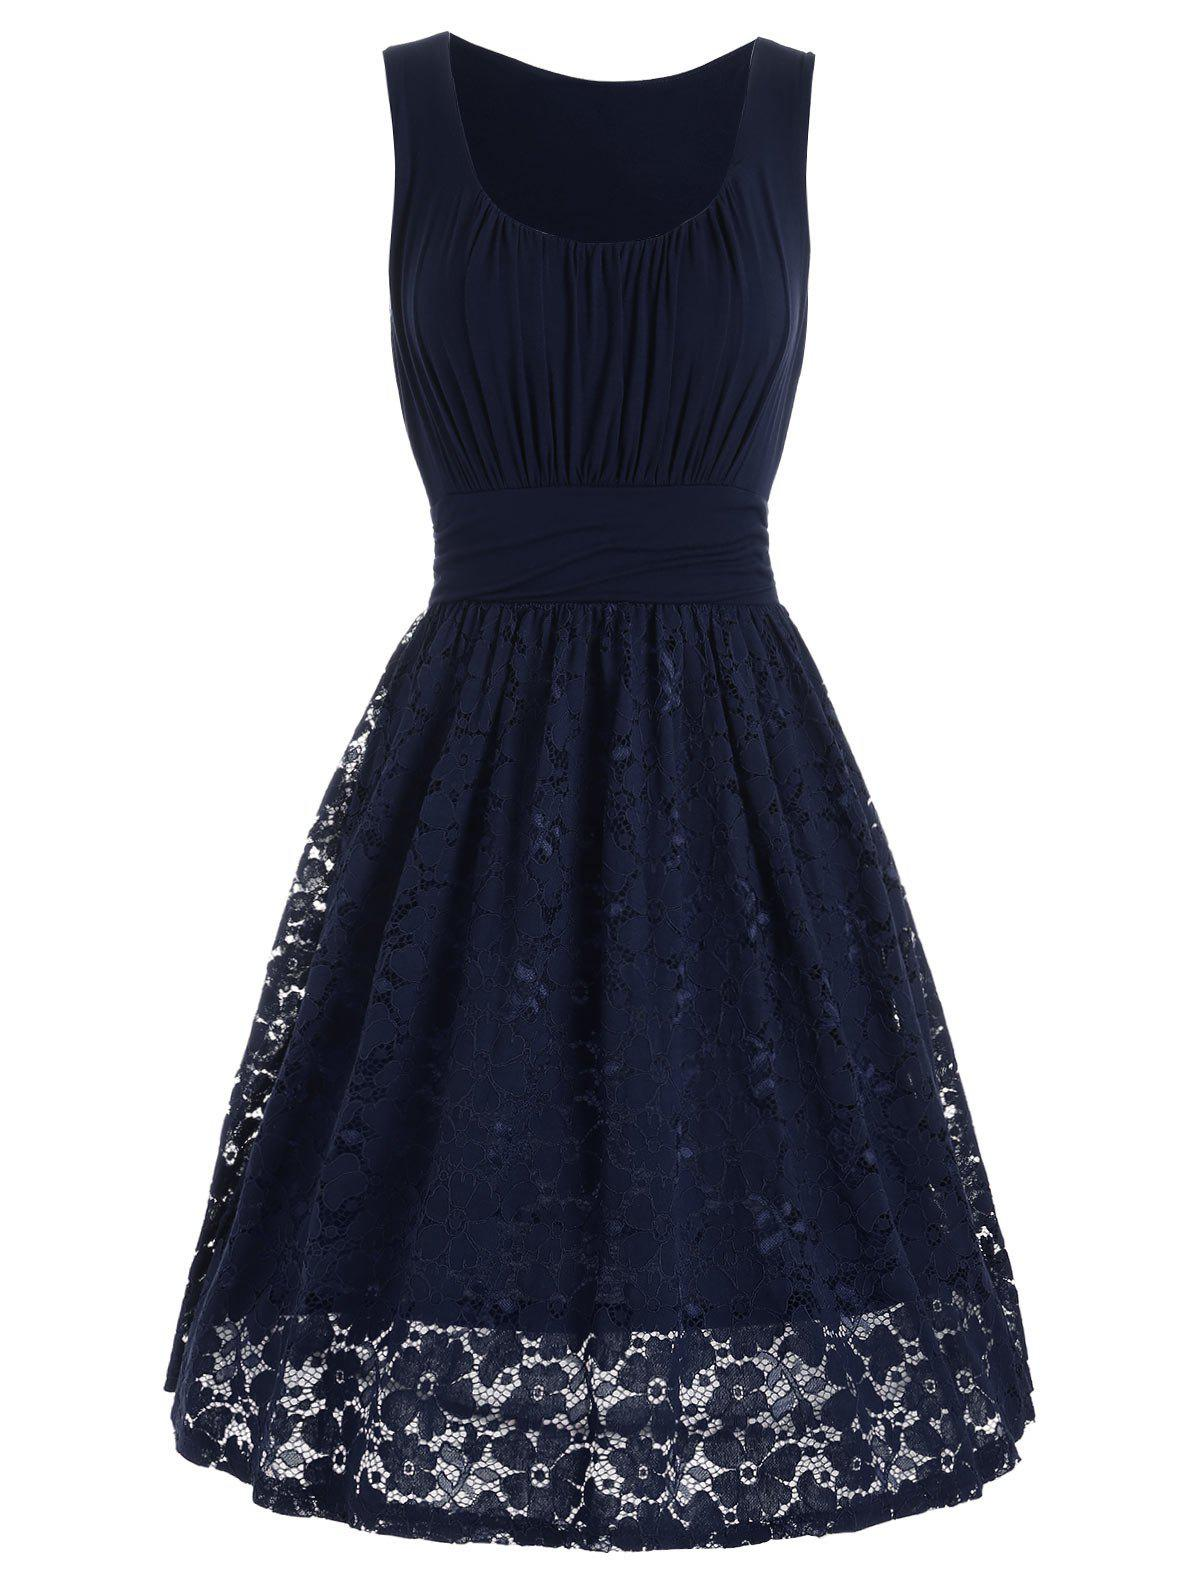 High Waist Drape Lace Panel Dress - PURPLISH BLUE XL